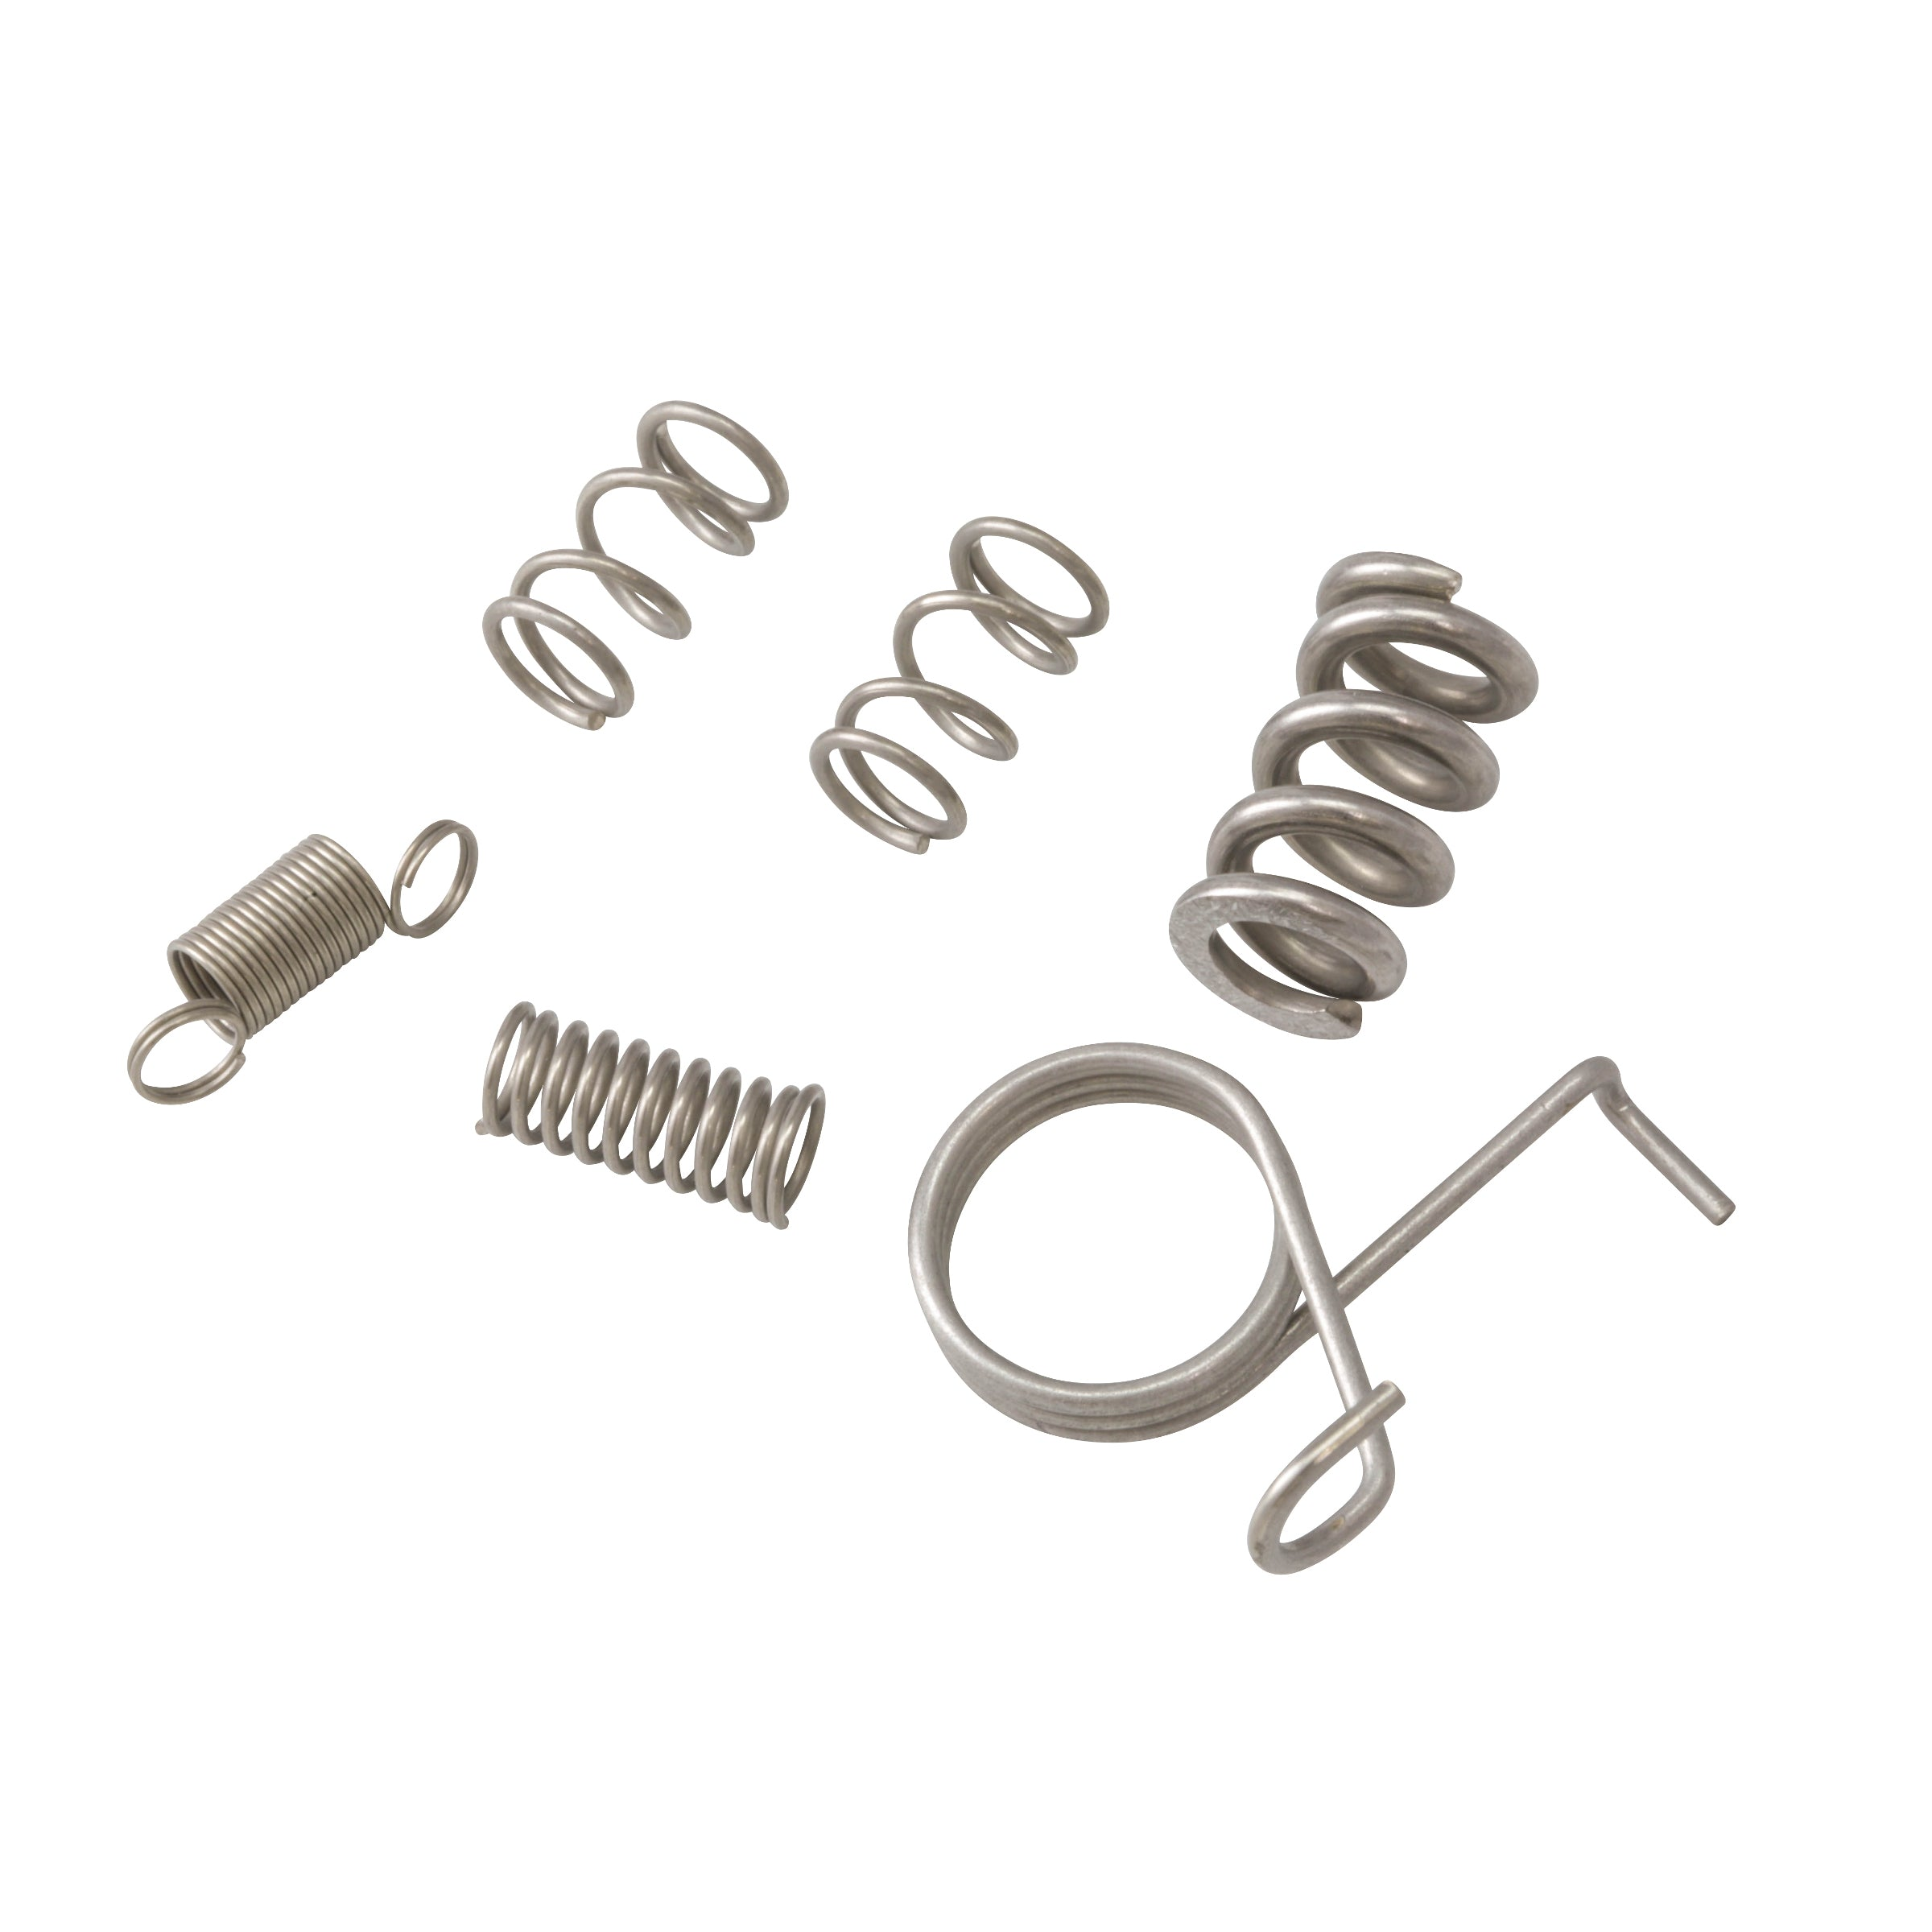 Genuine Stromberg 97 Carburetor Spring Kit